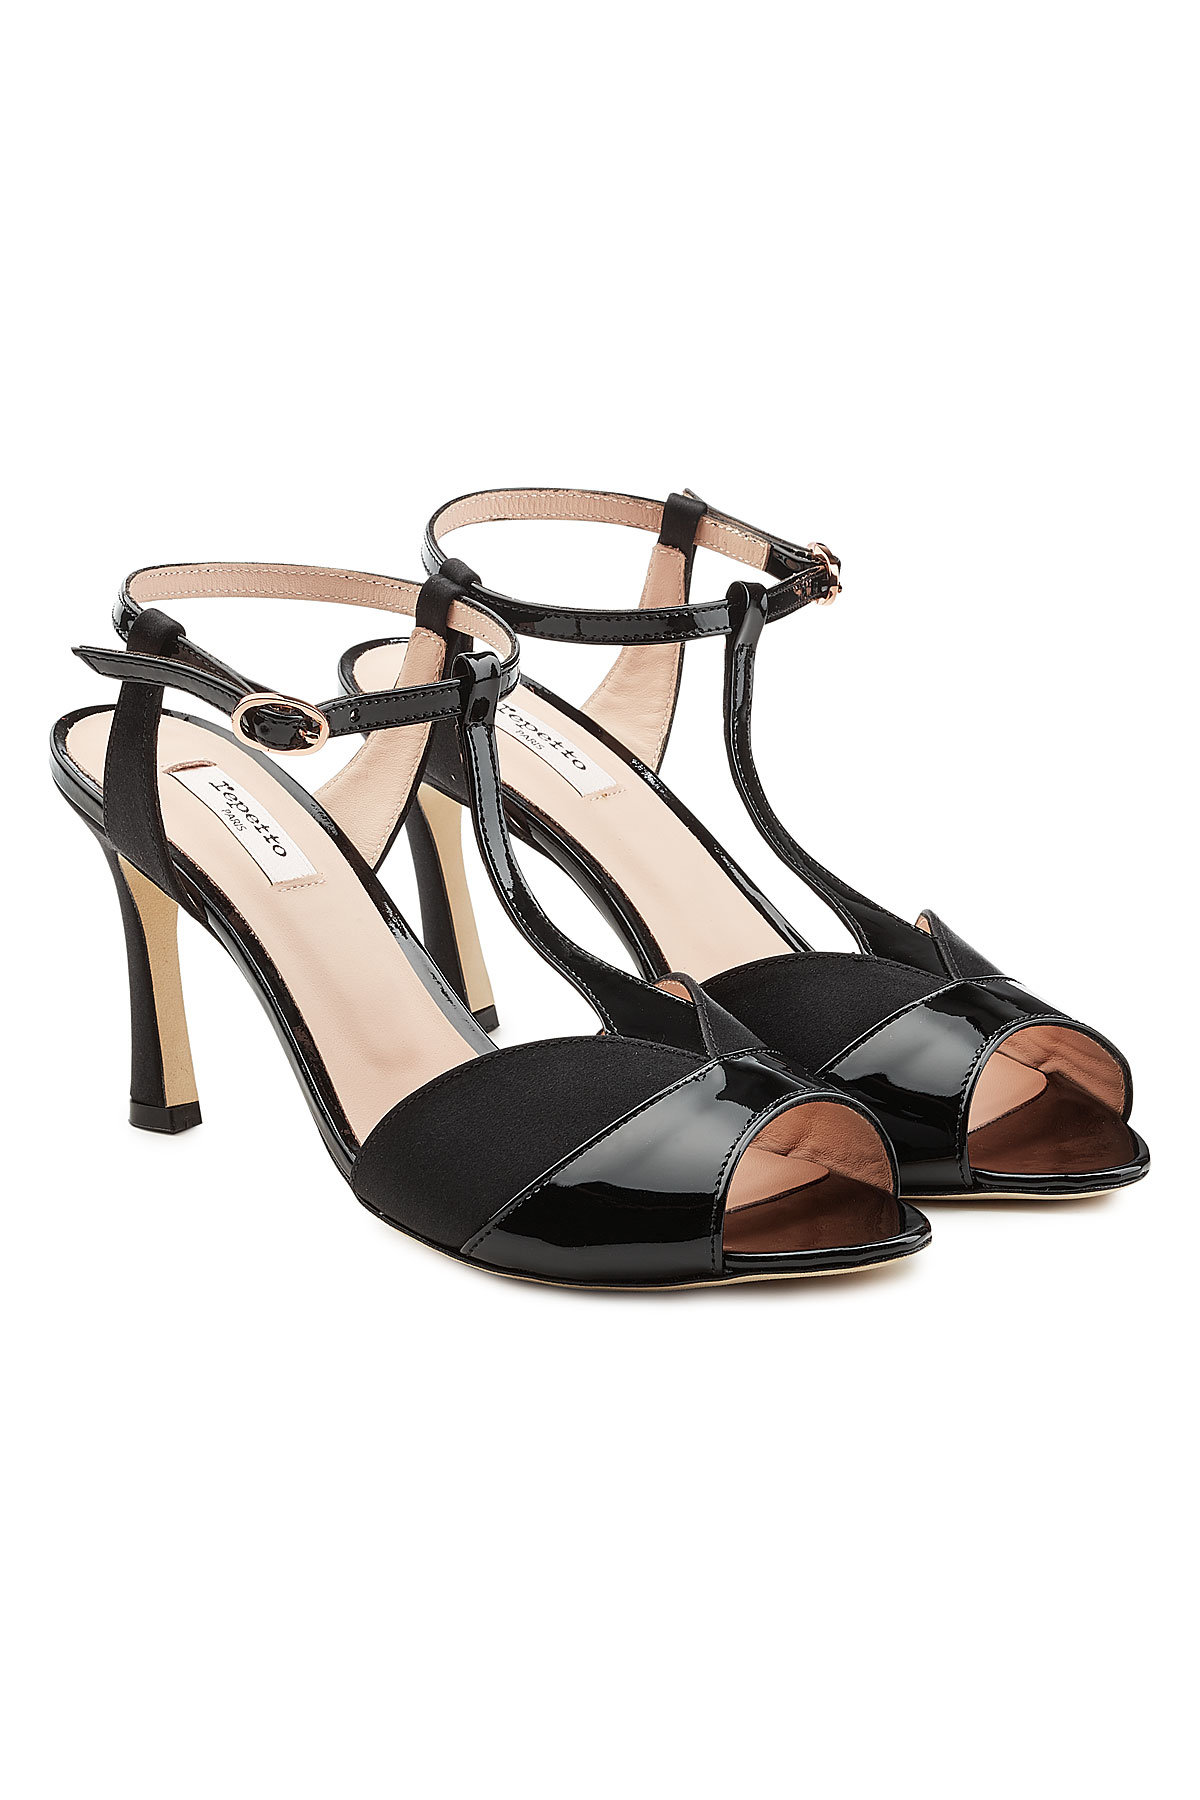 Repetto Irma Sandals in Patent Leather and Satin Gr. EU 40